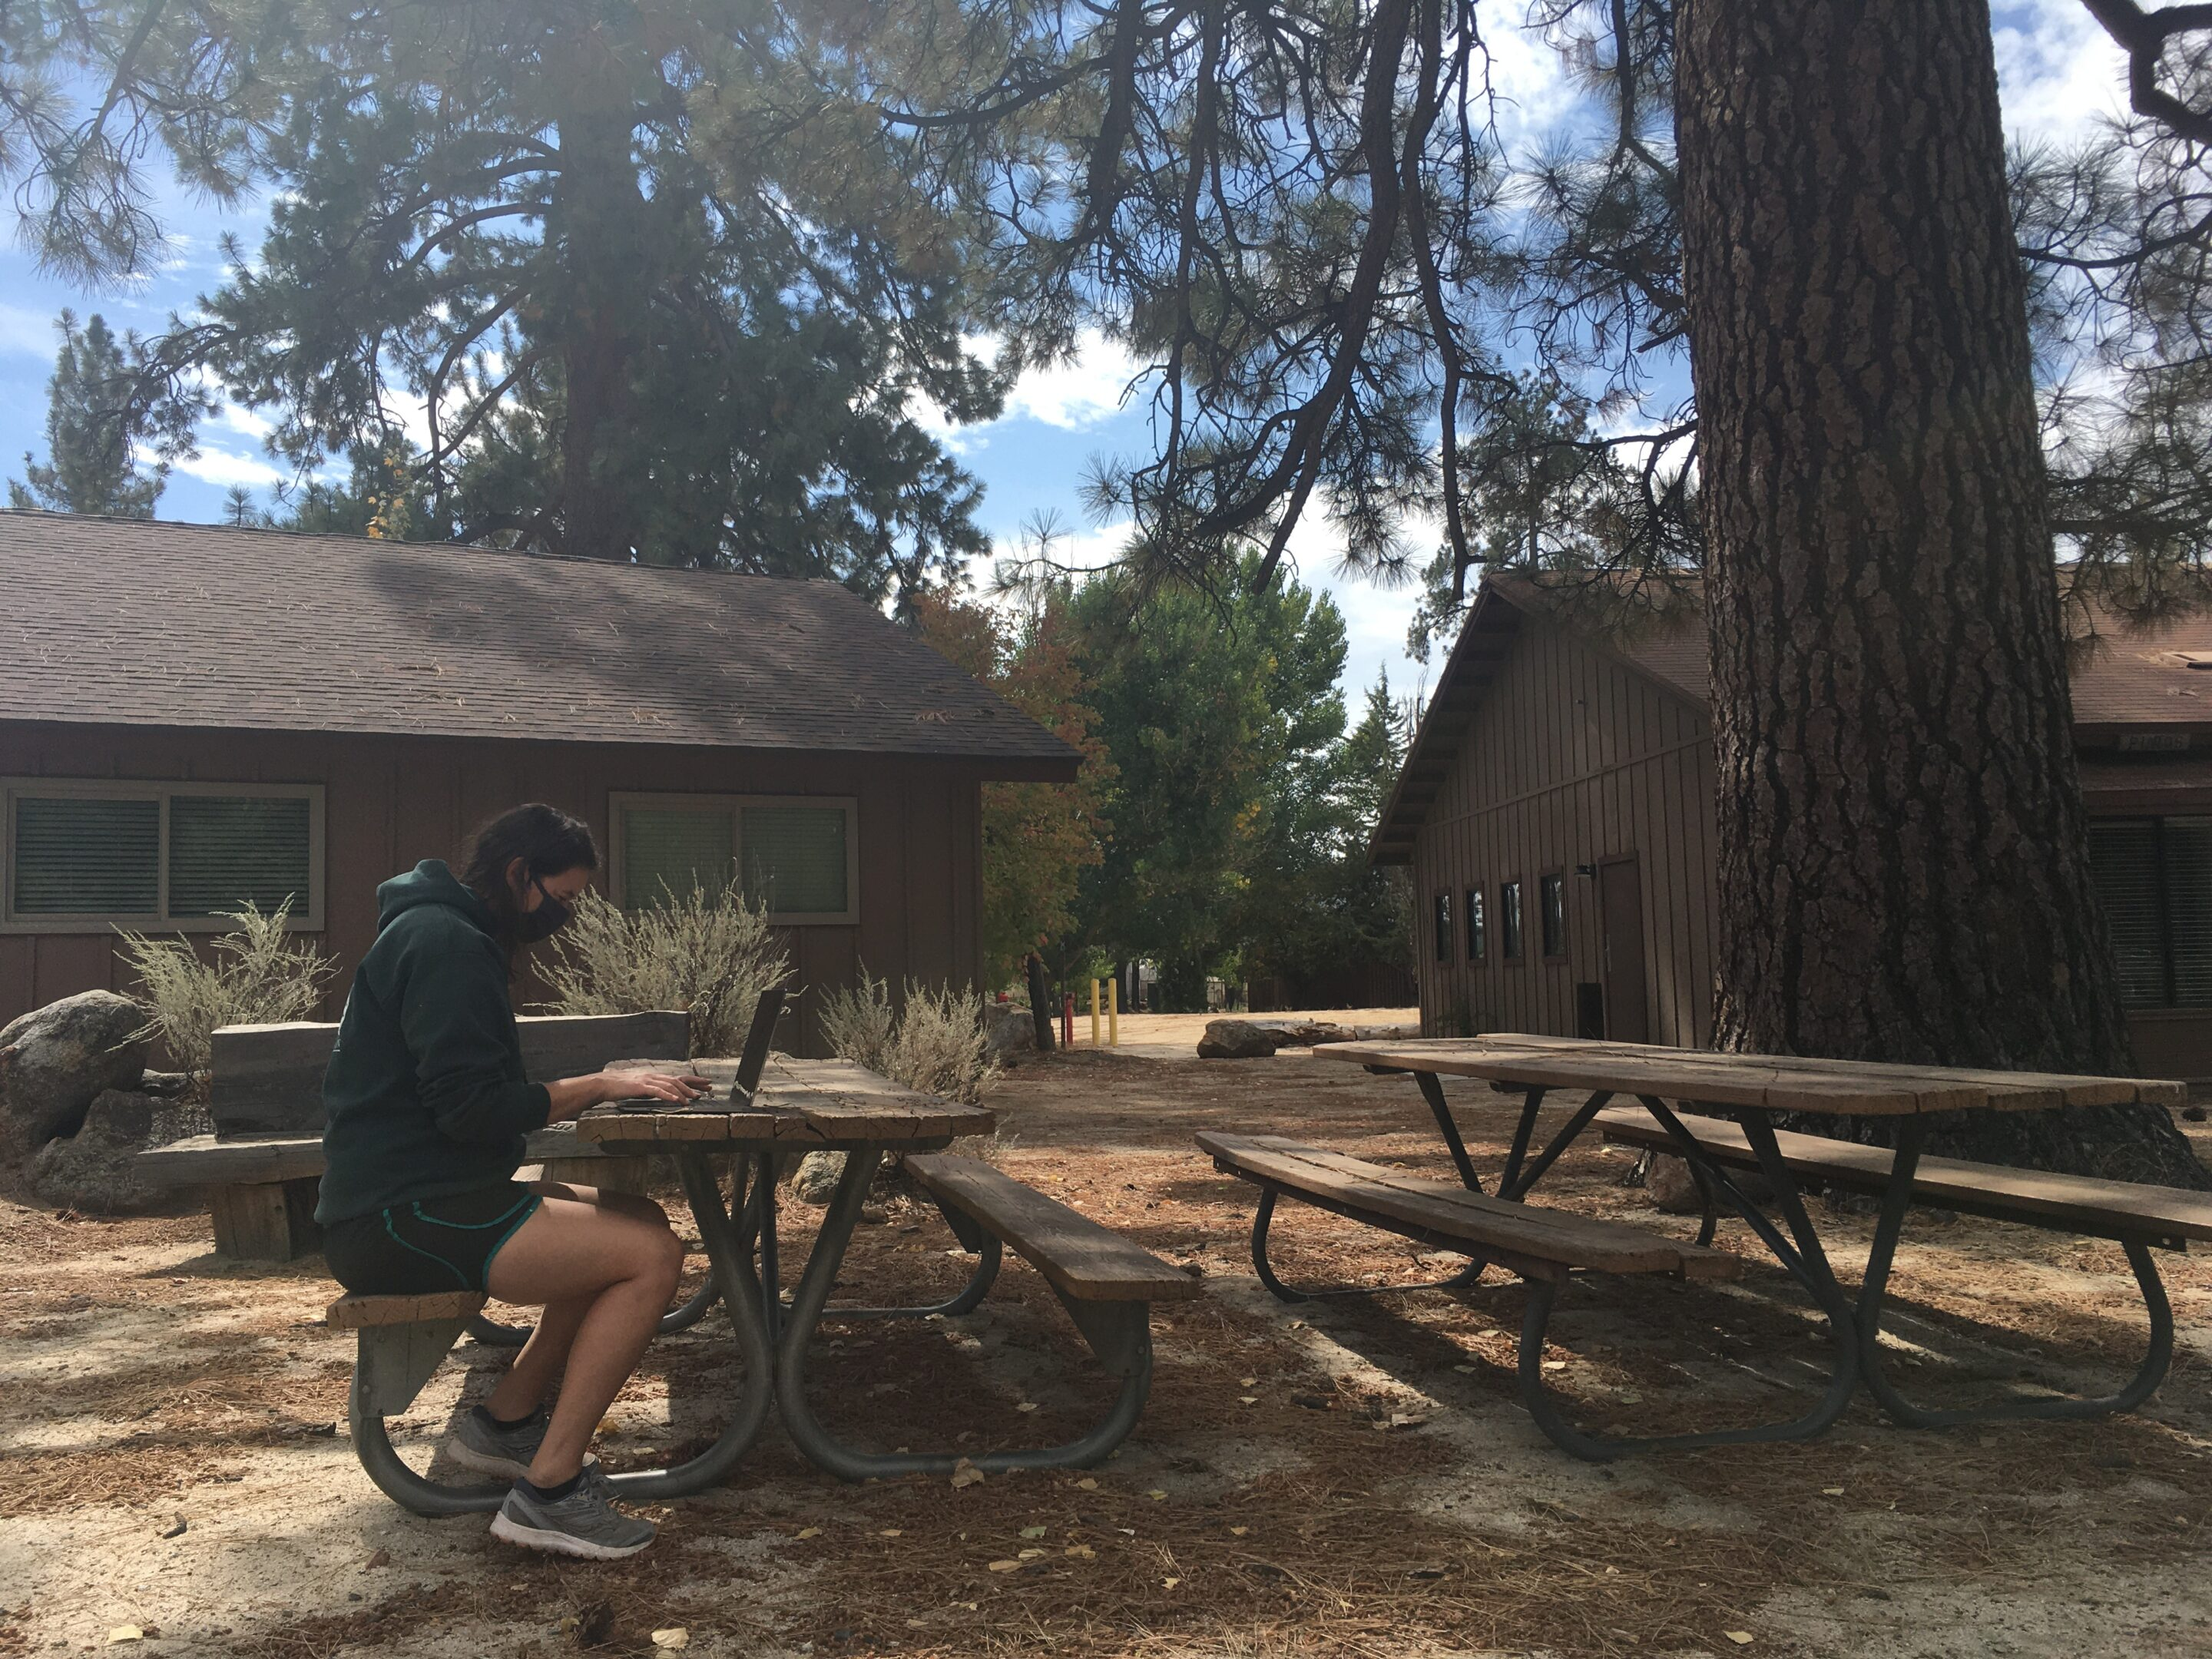 A woman wearing a facemask sits at a picnic table while working on a laptop. In the background are cabins, blue skies and a large pine tree.